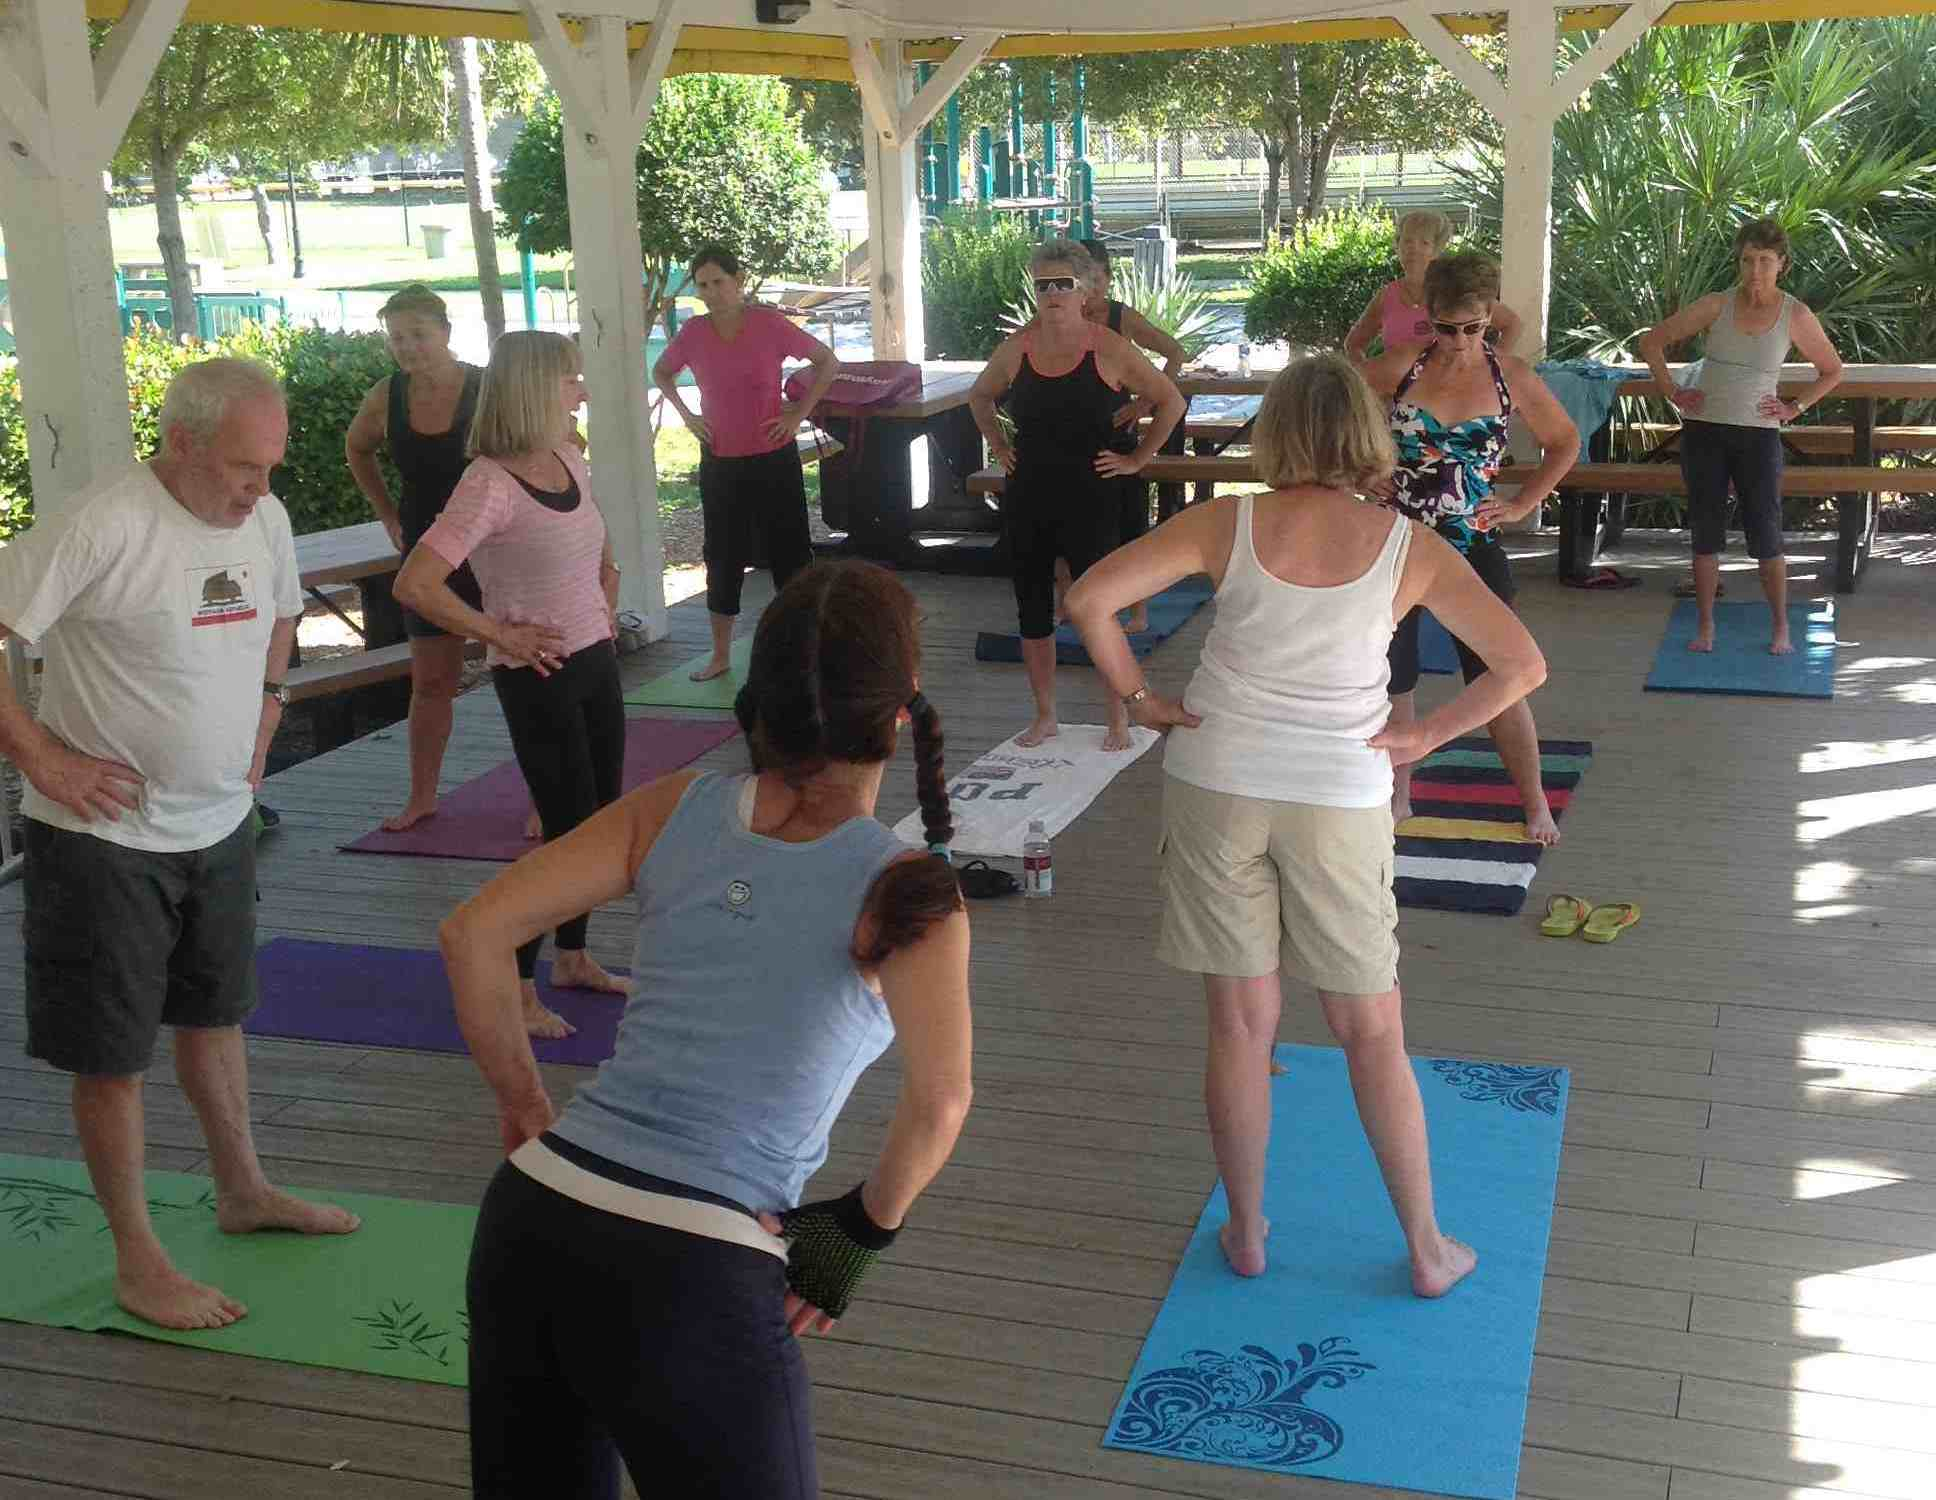 Marathon City Park adjacent to the city marina hosts complimentary yoga during the height of cruising season in the Florida Keys.